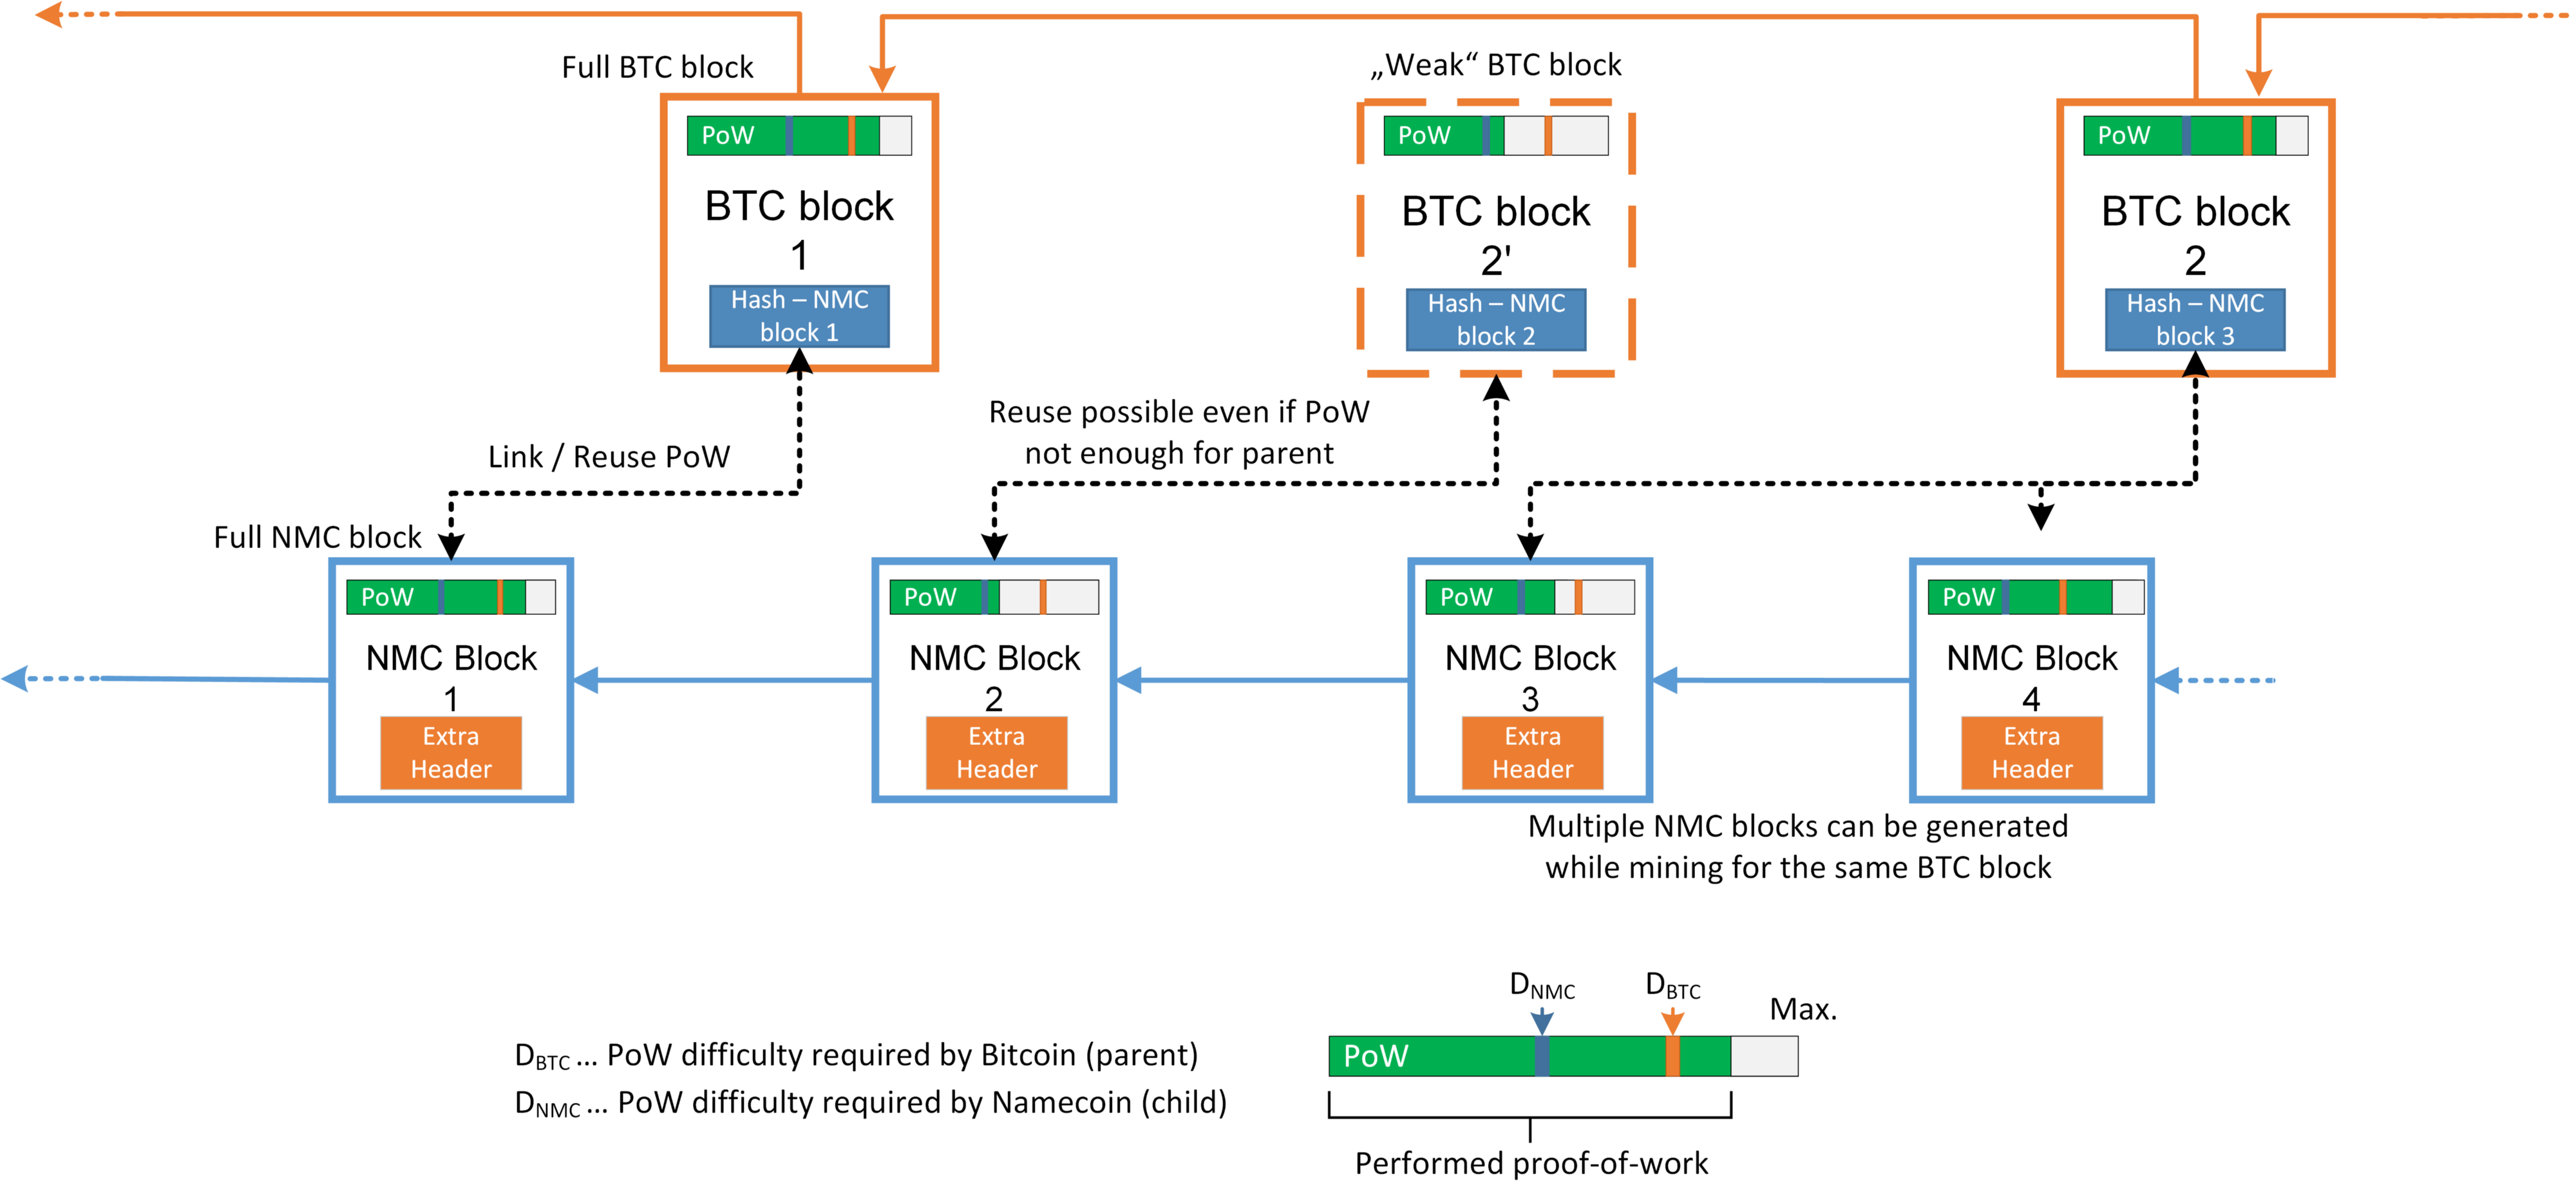 Overview of merged mining in Bitcoin with Namecoin. Assuming lower PoW difficulty requirements, Blocks accepted in Bitcoin will be accepted in Namecoin. However, even blocks missing the difficulty target for Bitcoin, can still meet the requirements for Namecoin, as shown for BTC Block 2'. Furthermore, as depicted for NMC Block 3 and 4, a single BTC block can be referenced my multiple NMC blocks, if numerous solutions meeting NMC's difficulty are found in the process of mining.